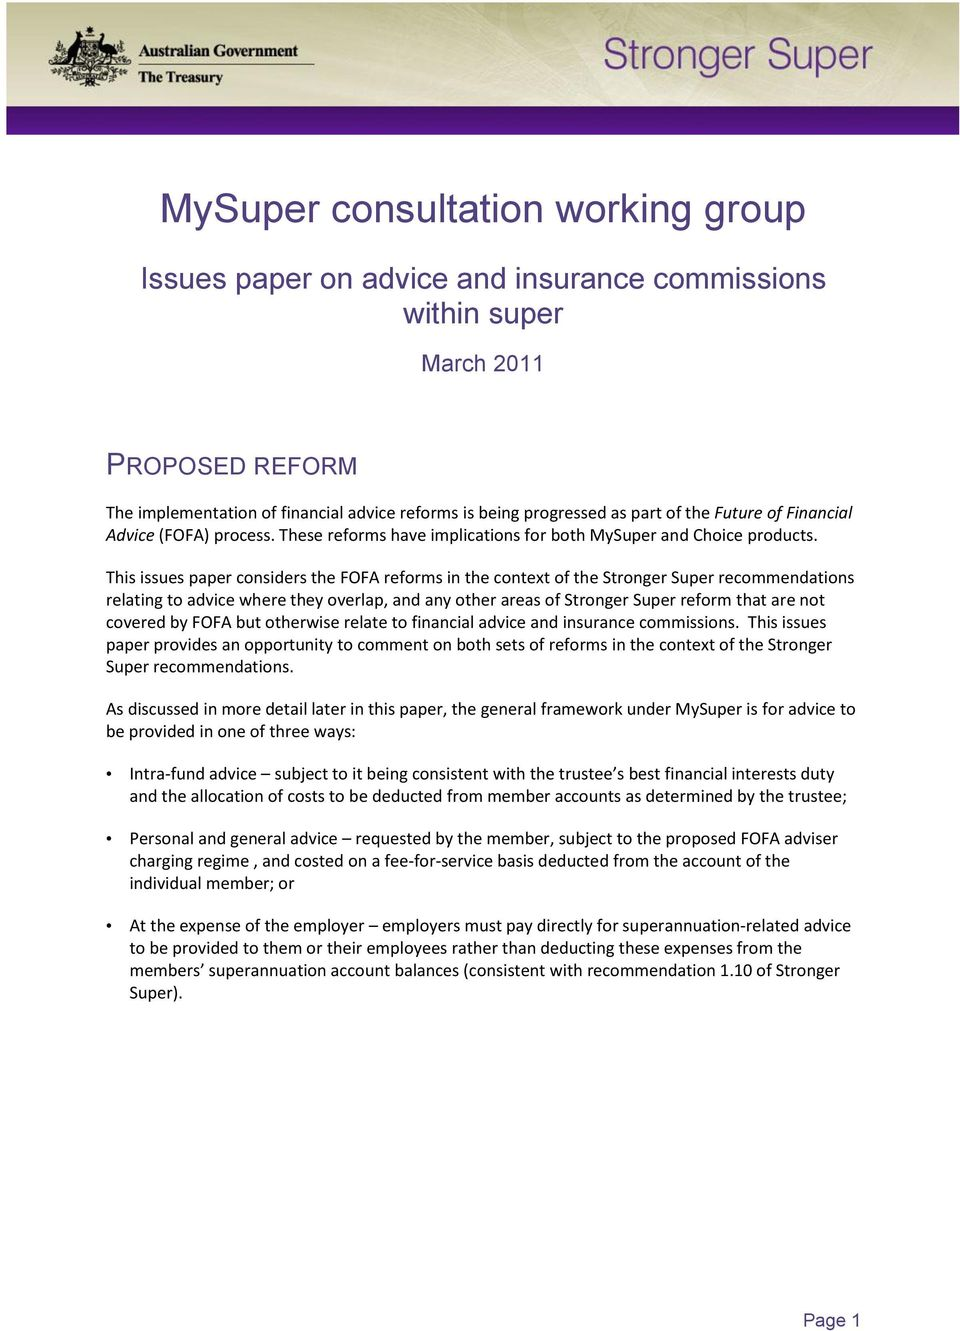 This issues paper considers the FOFA reforms in the context of the Stronger Super recommendations relating to advice where they overlap, and any other areas of Stronger Super reform that are not